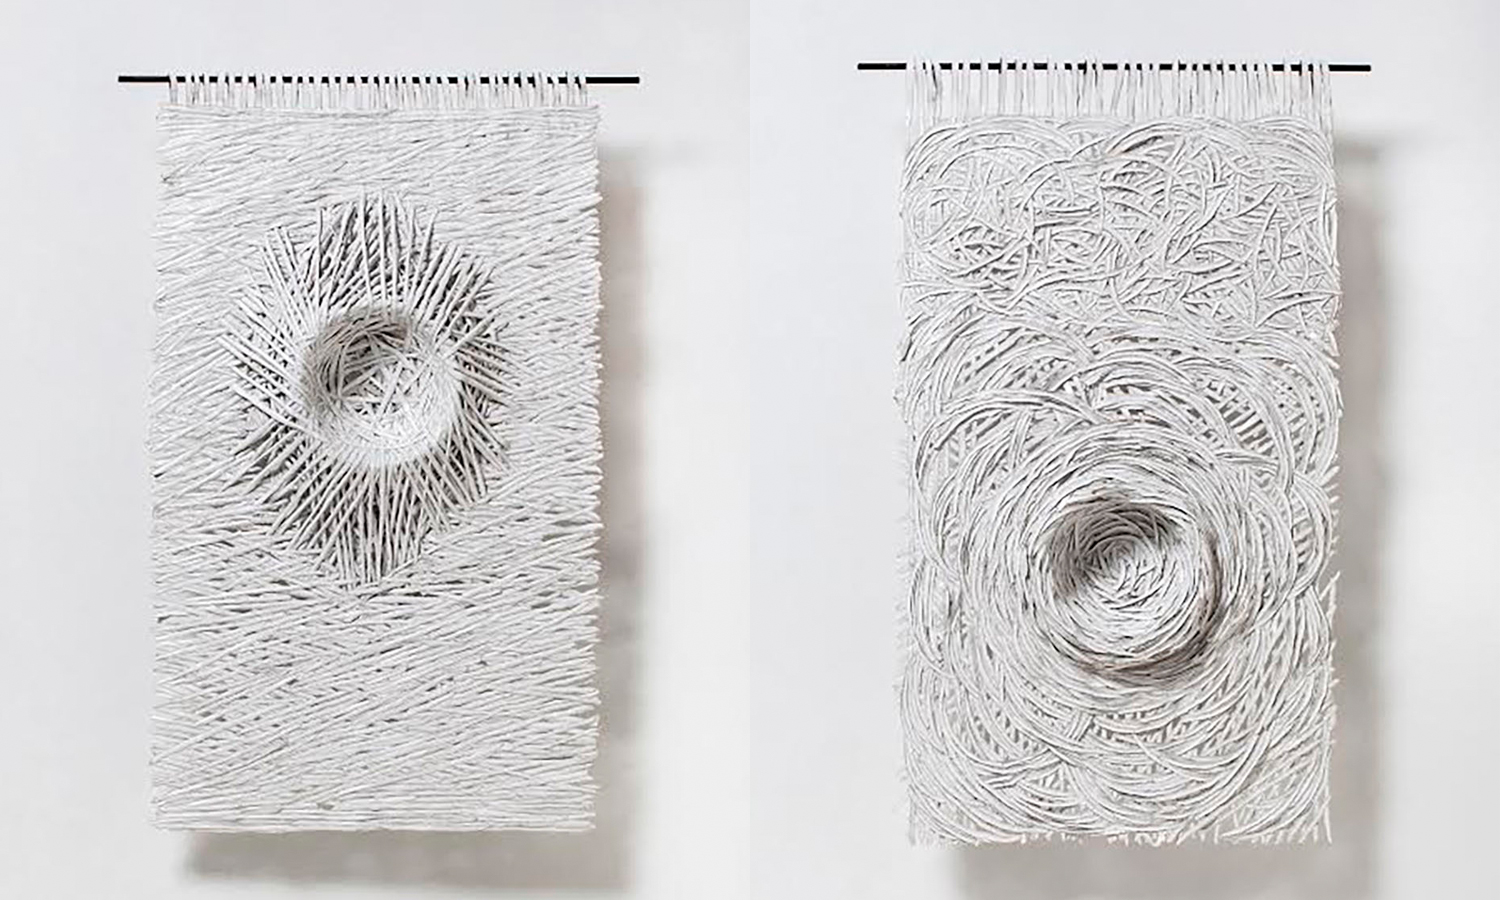 Textural Monochrome Hand-Torn Paper Tapestries Inspired by Nature - Nests